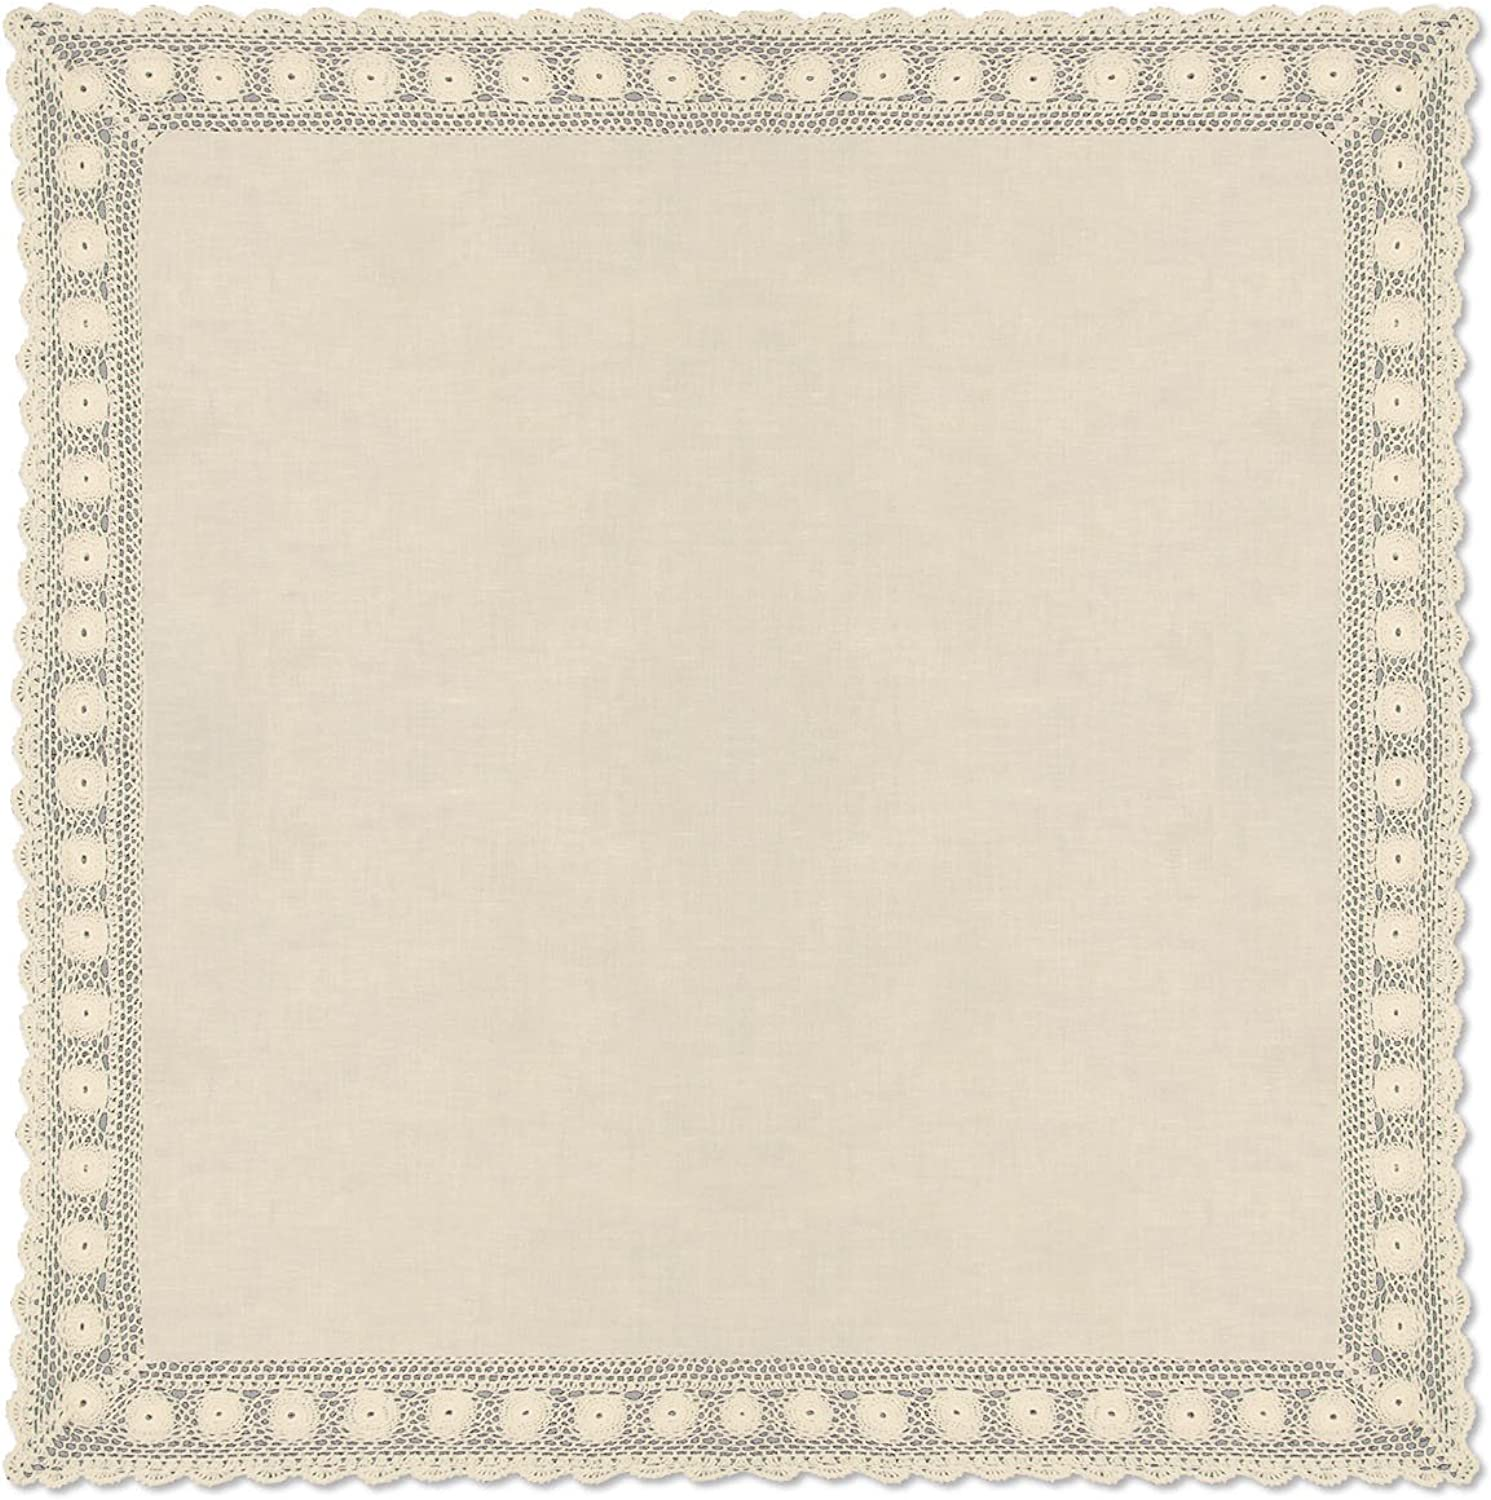 Heritage Lace bluee Ribbon Crochet Rectangle Table Topper, 42 by 42 , Cream